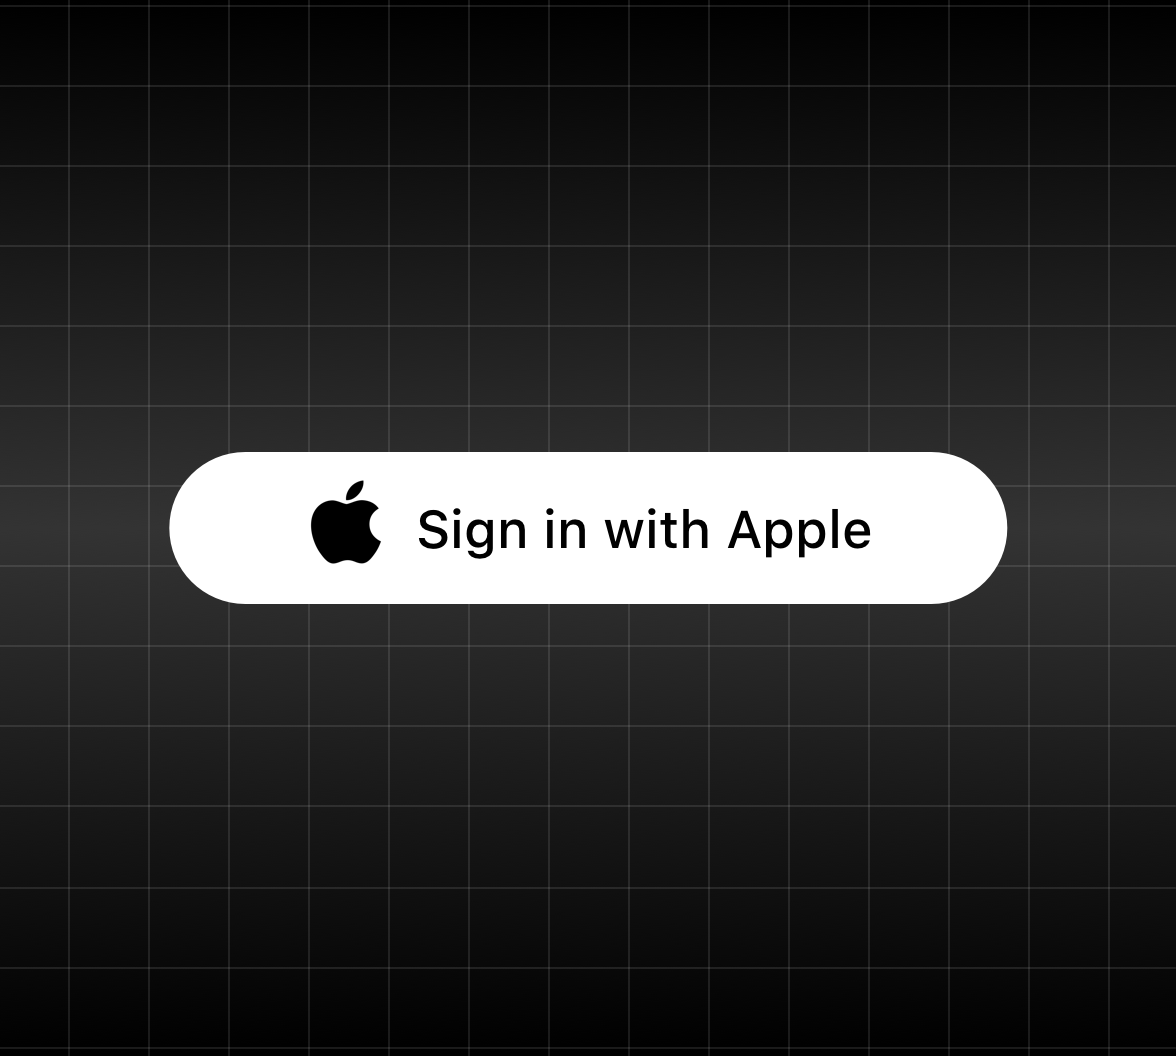 Apple One Tap Account Upgrades from WWDC 2020